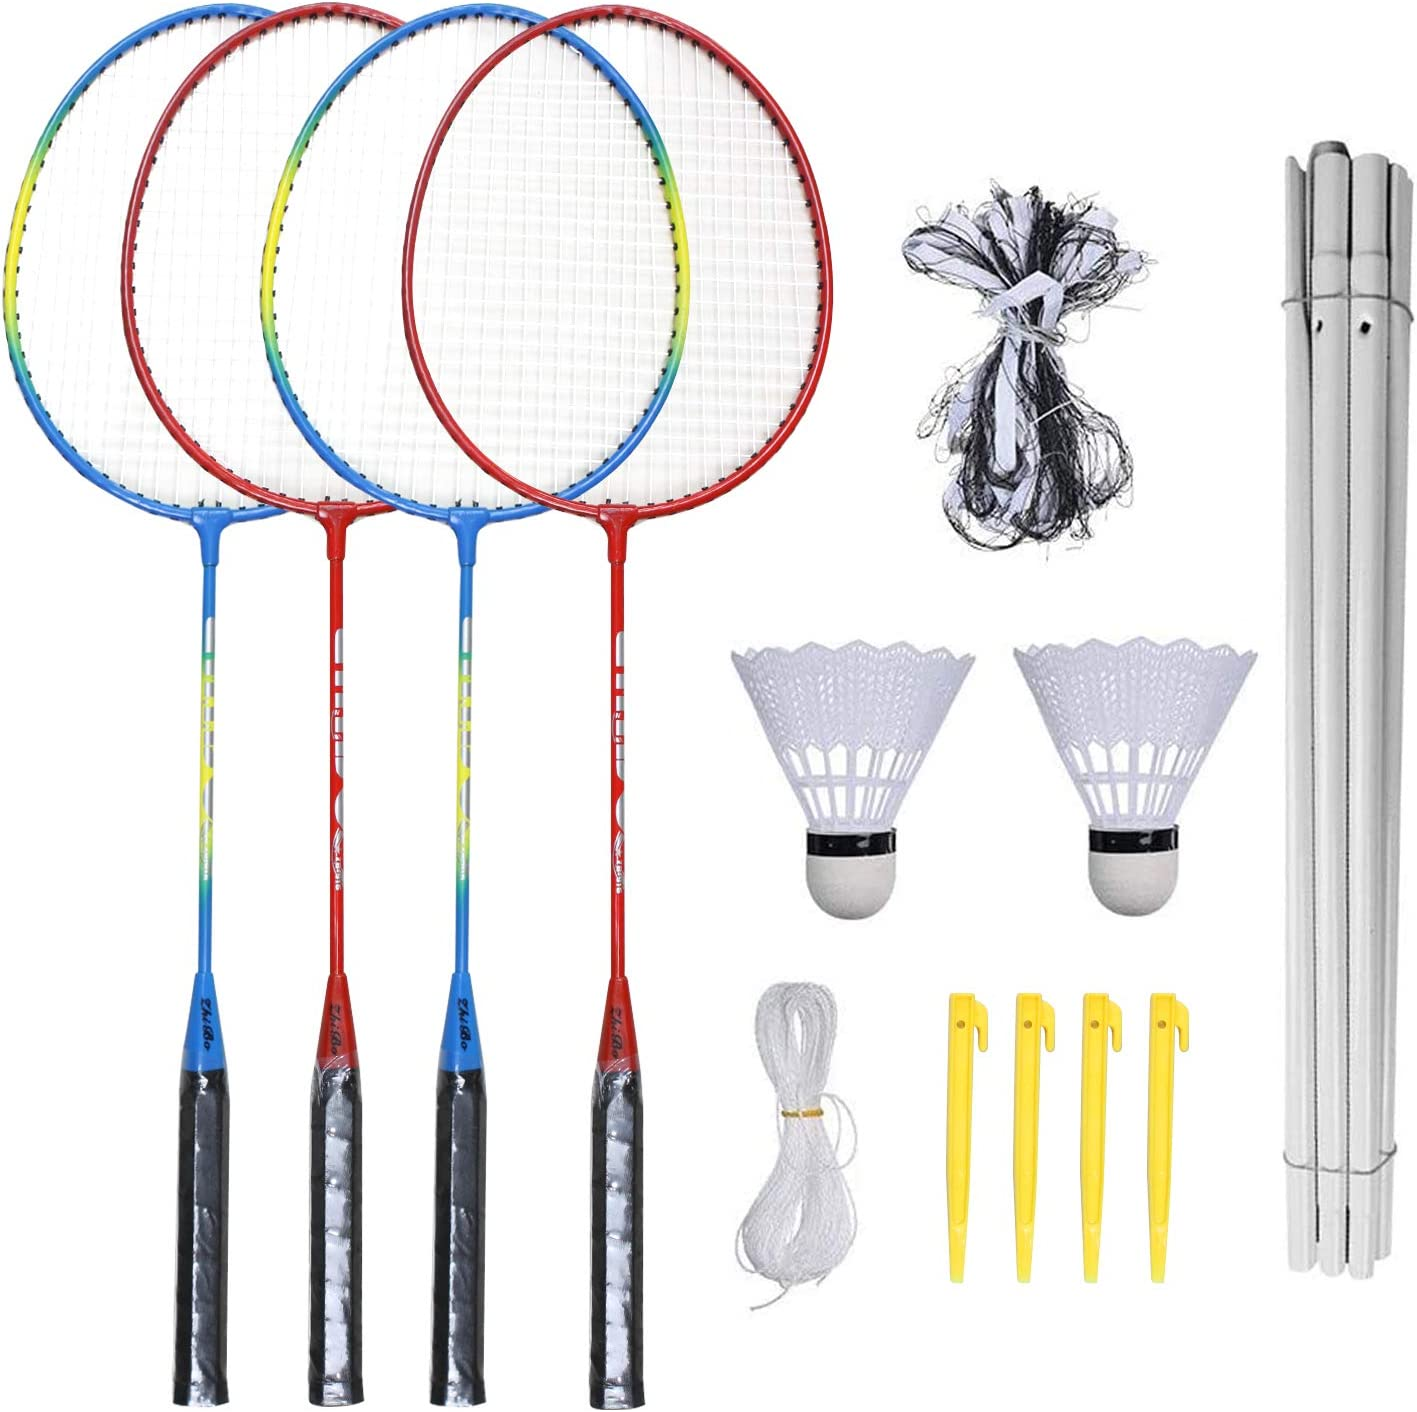 Amazon Com Haskas Badminton Set Portable Outdoor Badminton Combo Set Badminton Net System Fun Lawn Or Beach Game Sets For The Whole Family Sports Outdoors